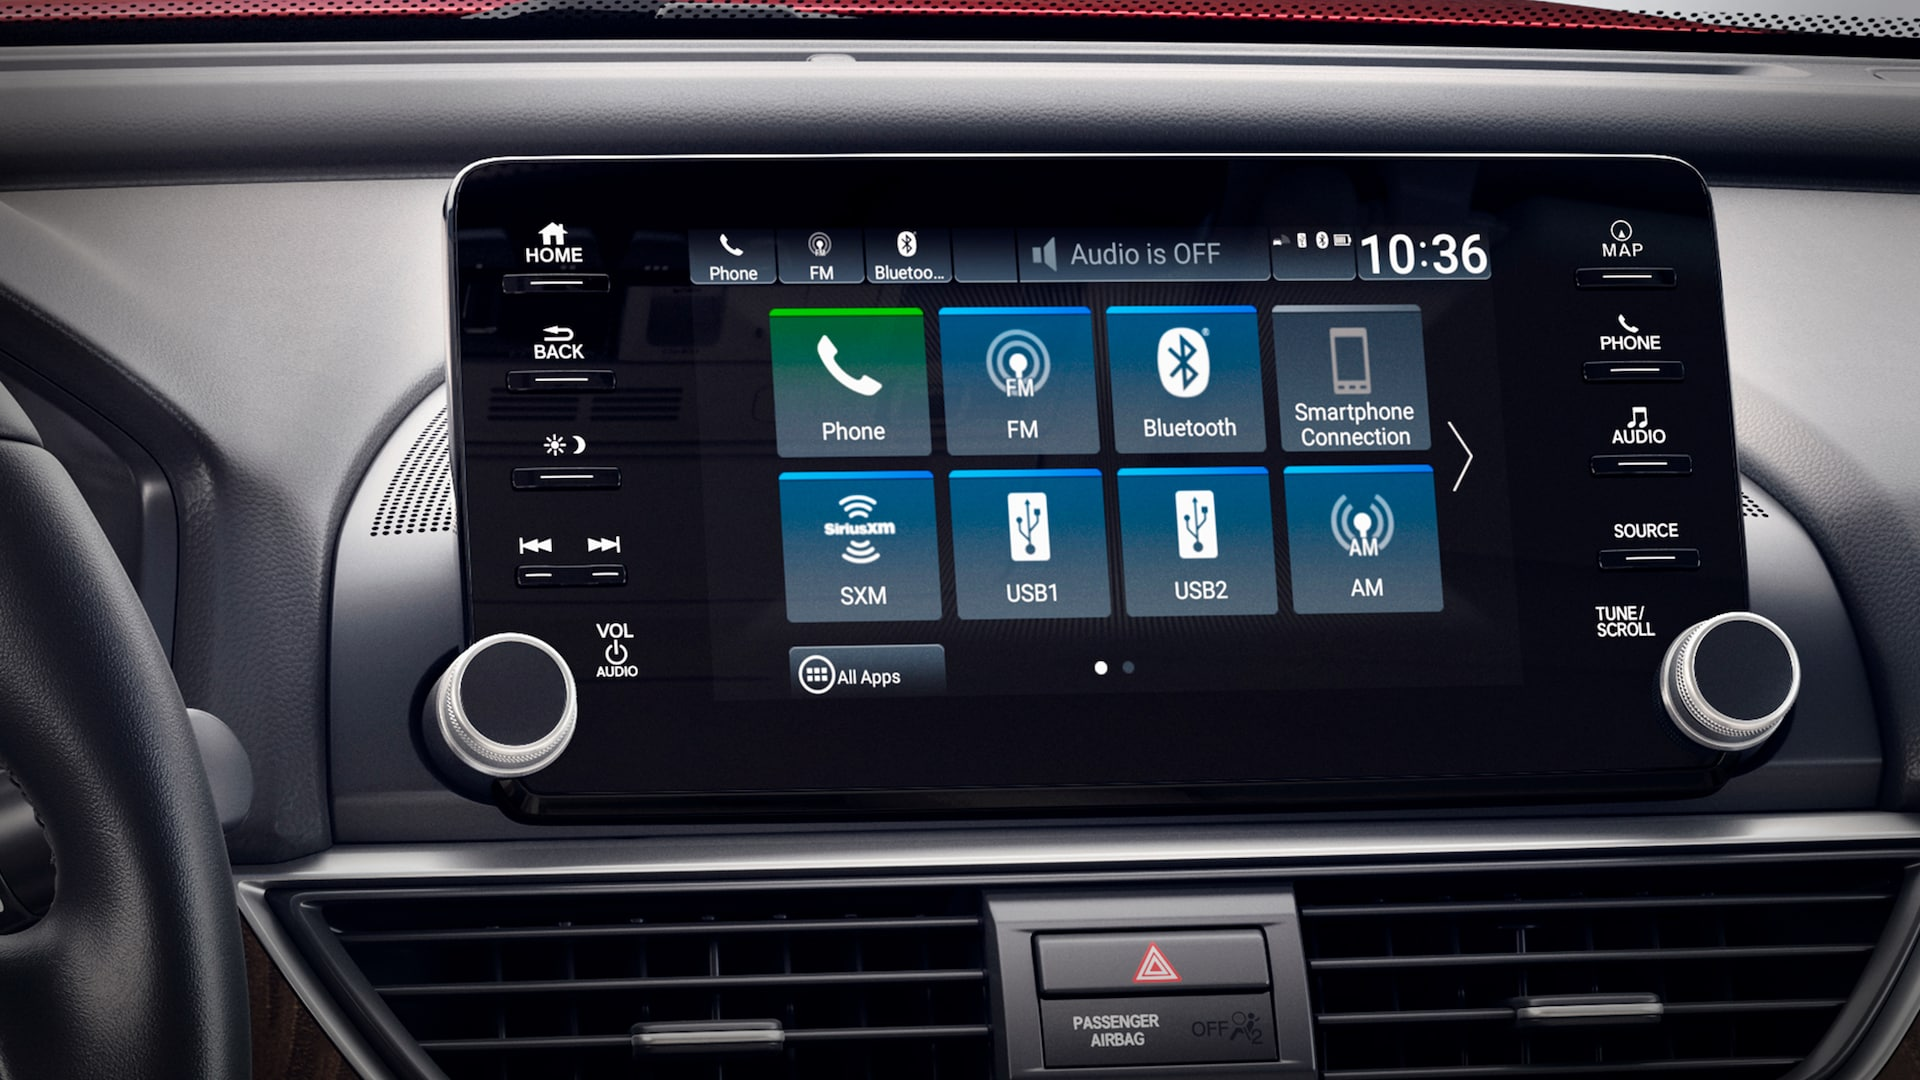 8-inch Display Audio touch-screen detail in the 2020 Honda Accord Touring 2.0T.